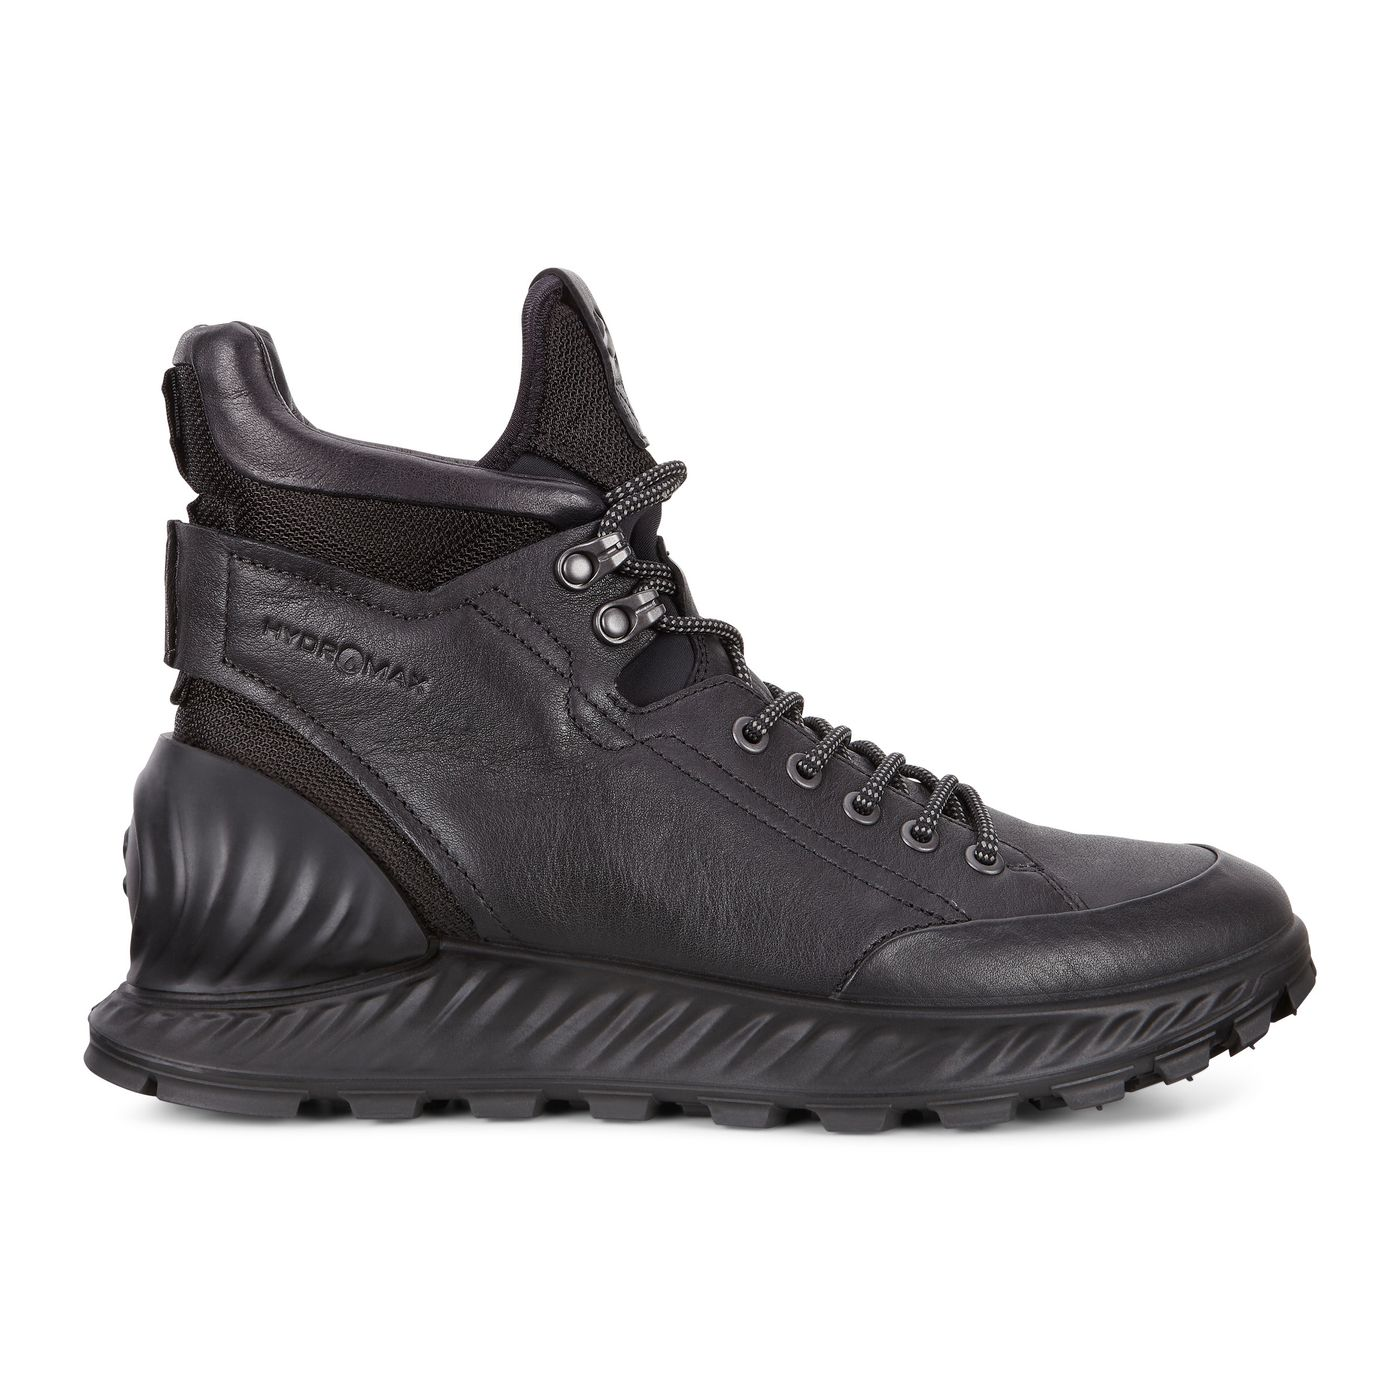 Ecco Exostrike with super soft Yak leather   ...зима   Shoes, Boots ... a88cedf7893